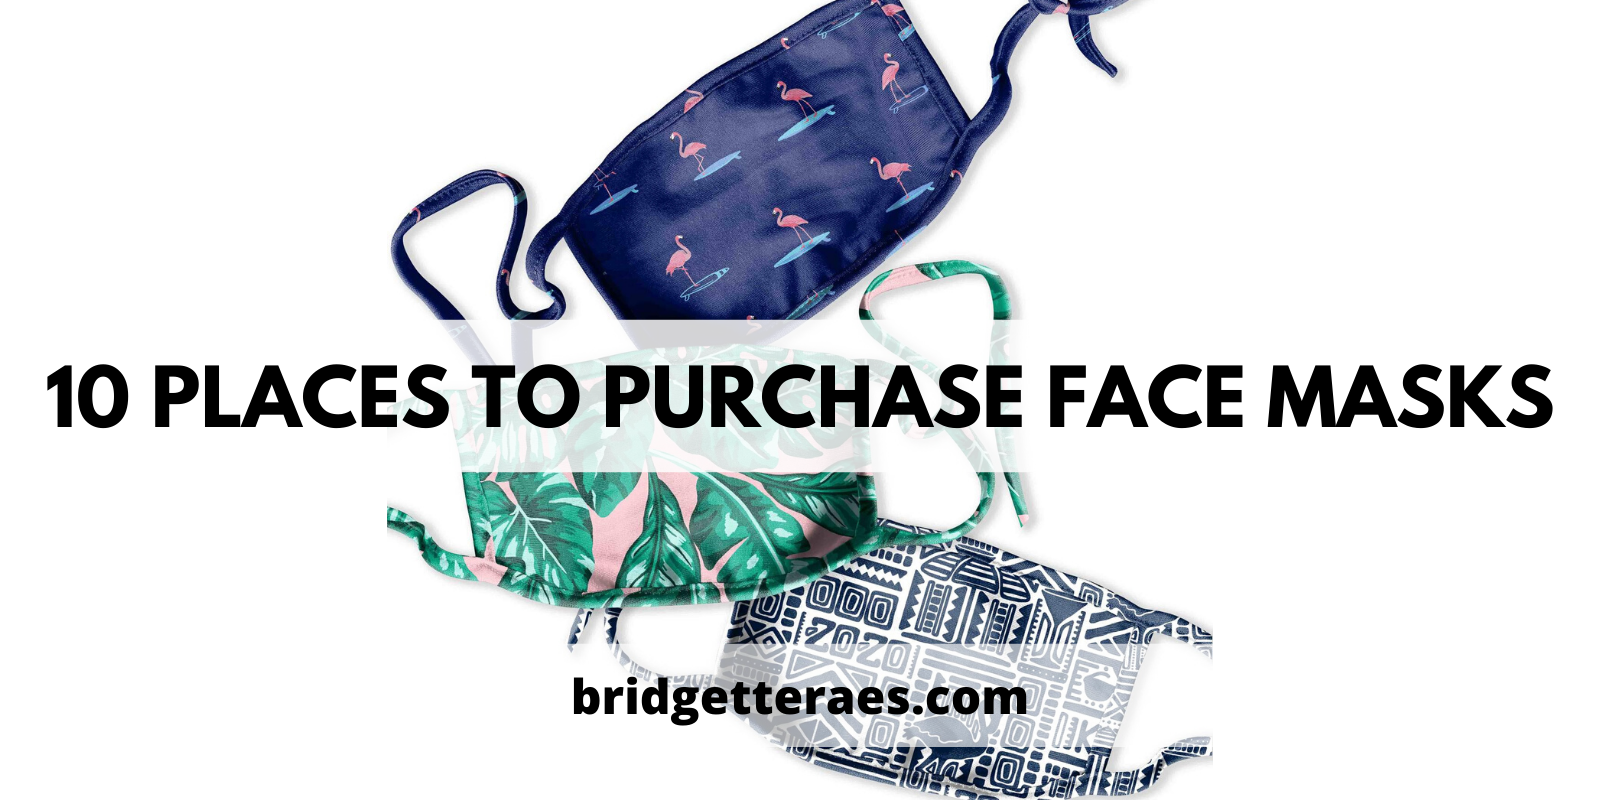 Ten Places to Purchase Face Masks